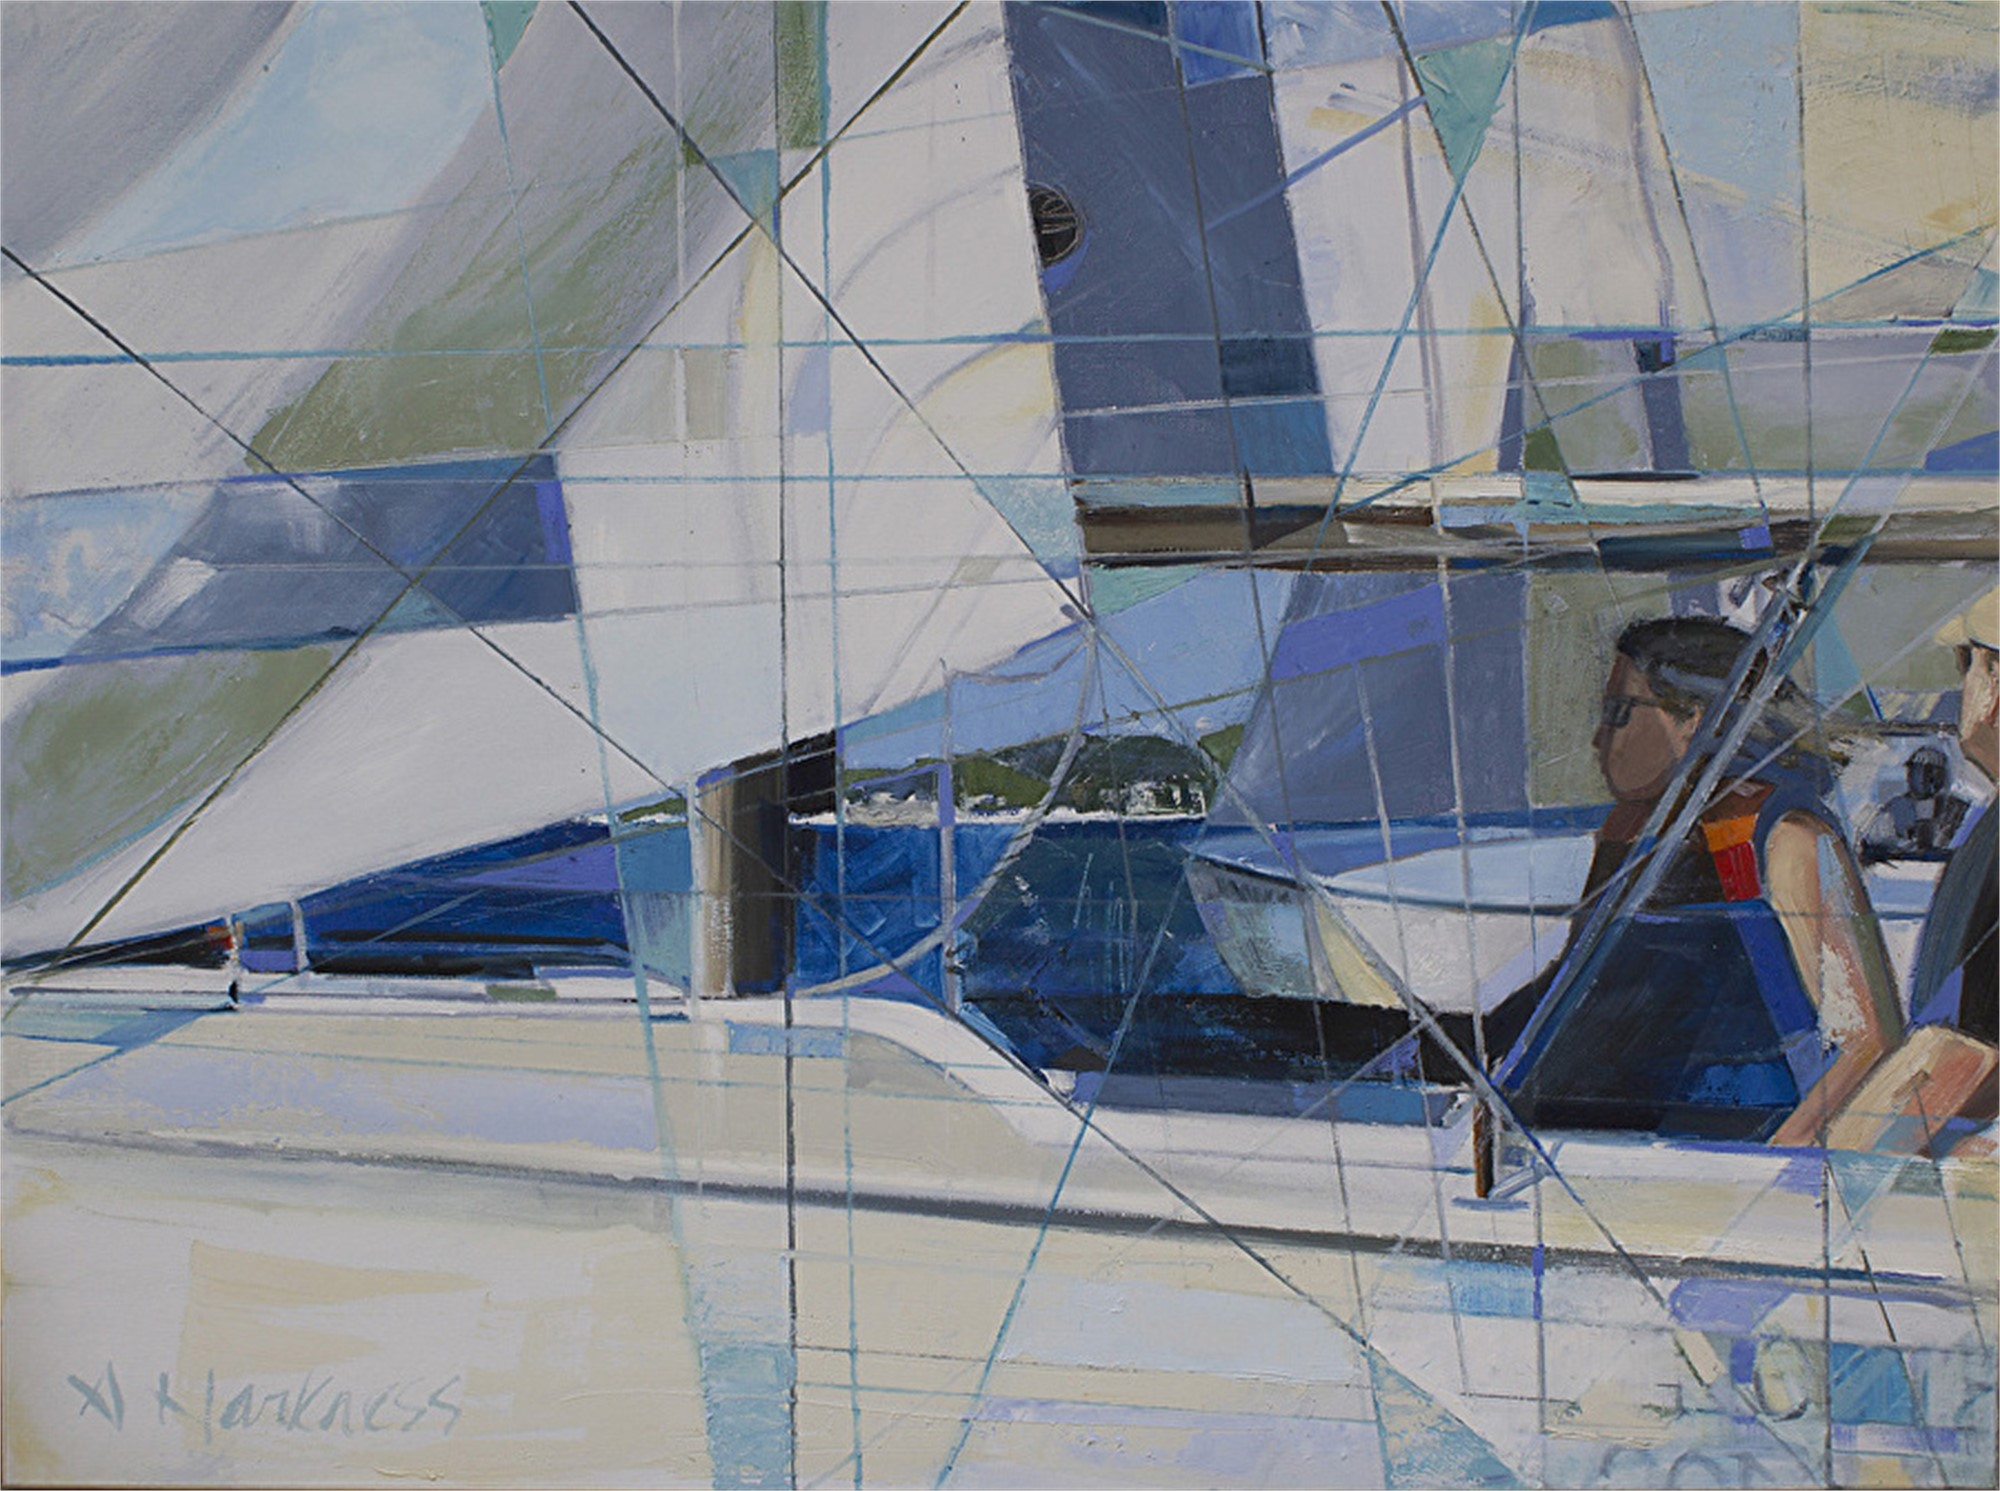 Lines on Boats by Anne Harkness